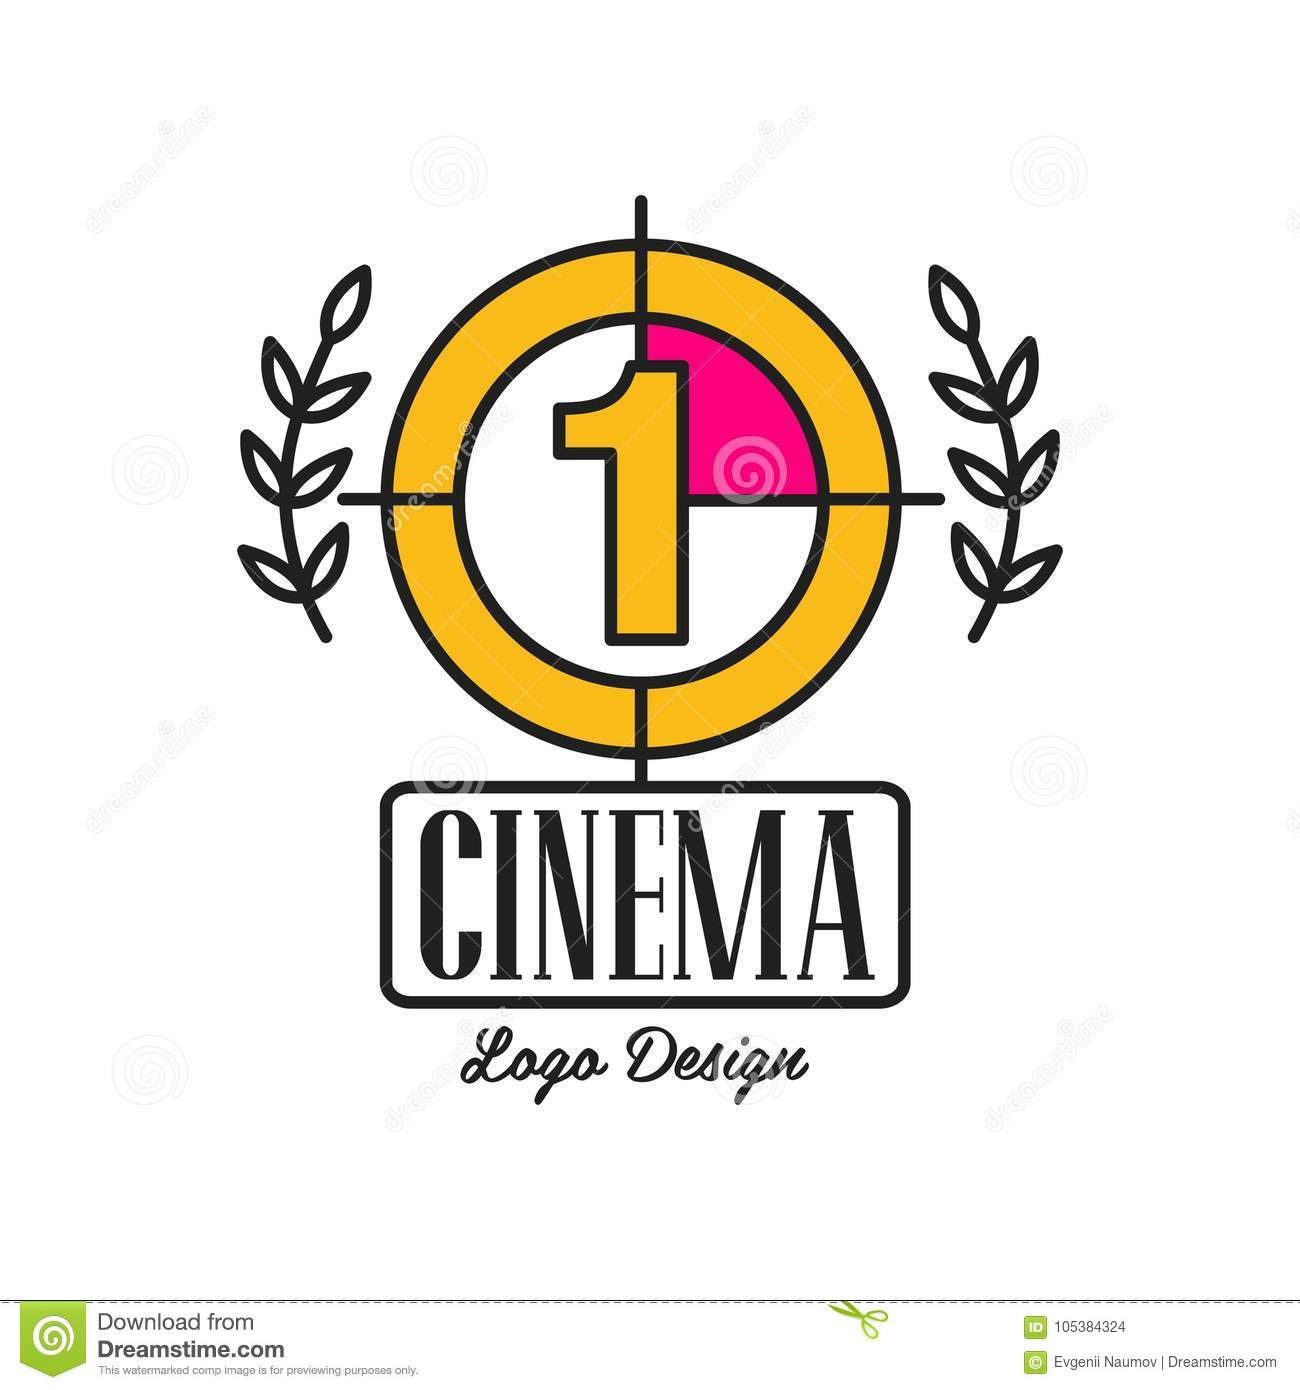 Cinema or movie logo template creative design with old retro filmstrip countdown, number one and laurel branches. Flat